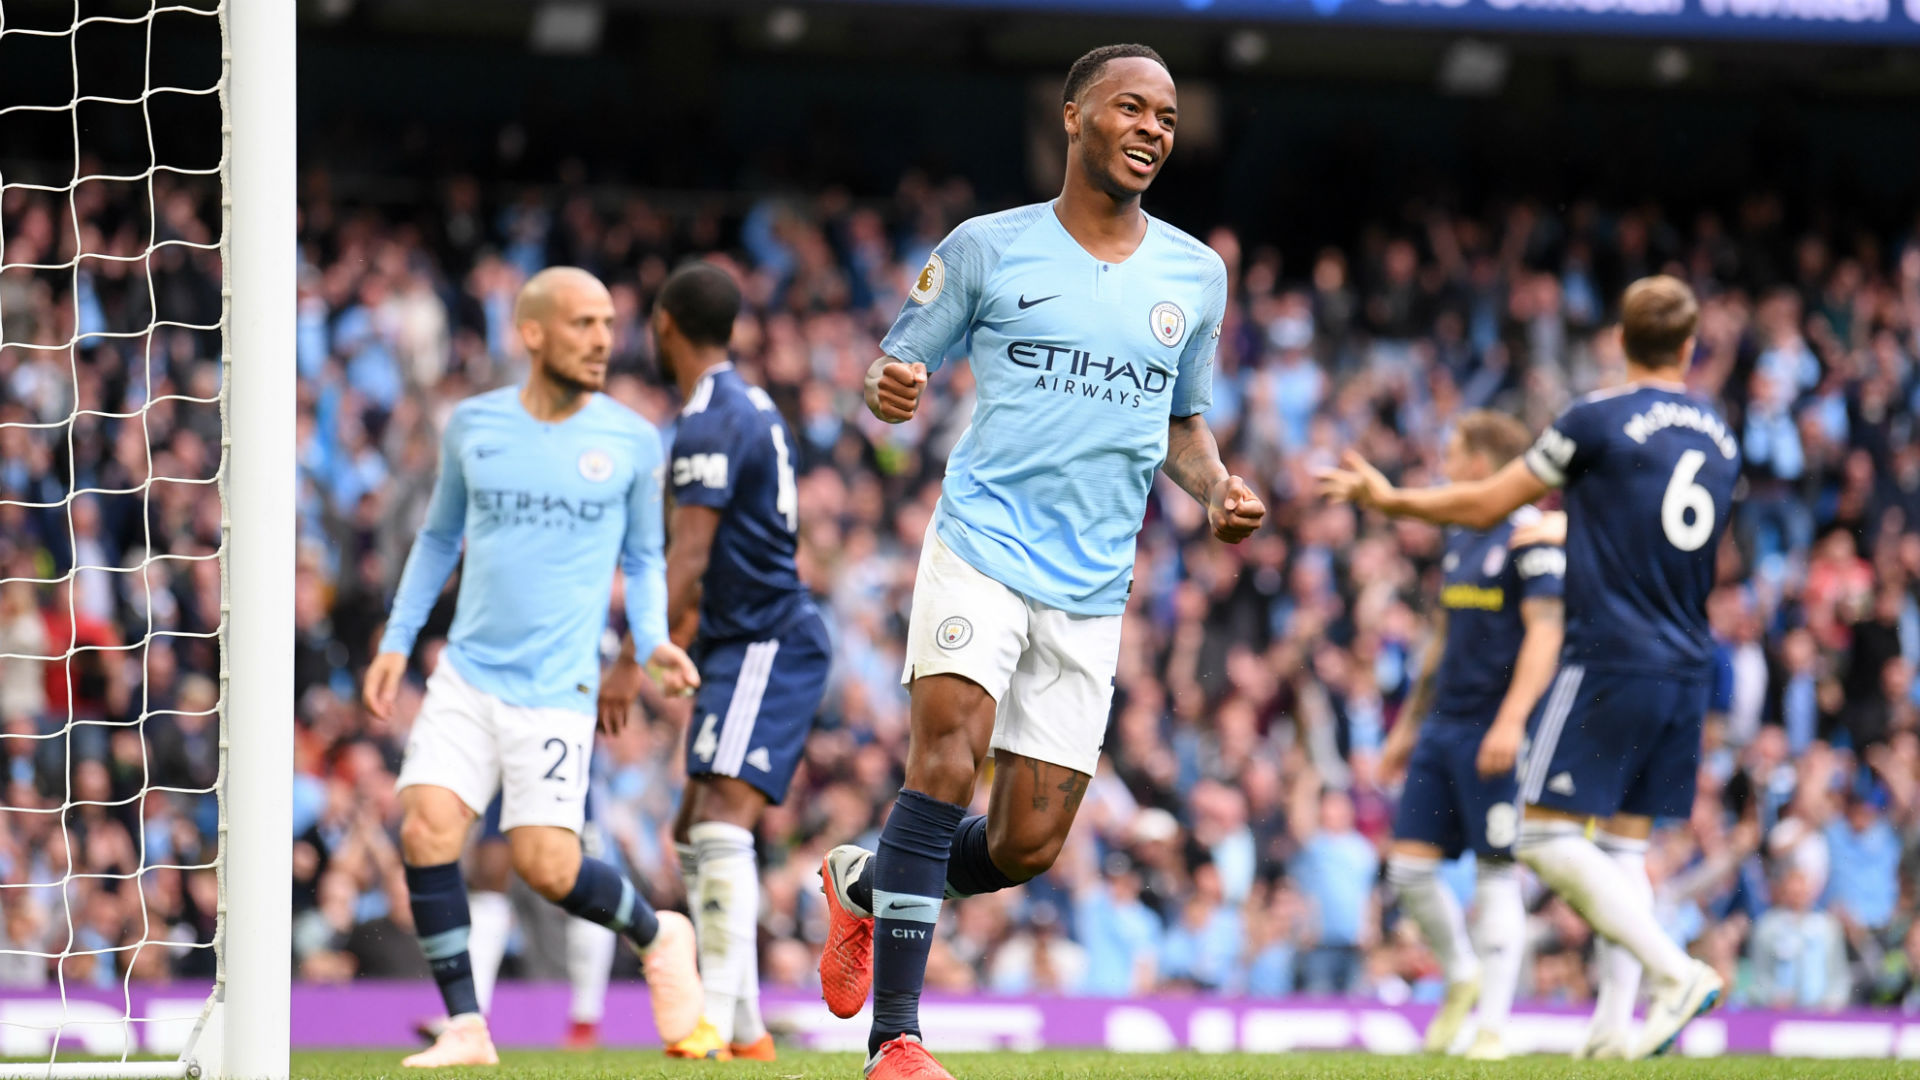 Sterling 2023: The rise and rise of Raheem at Man City